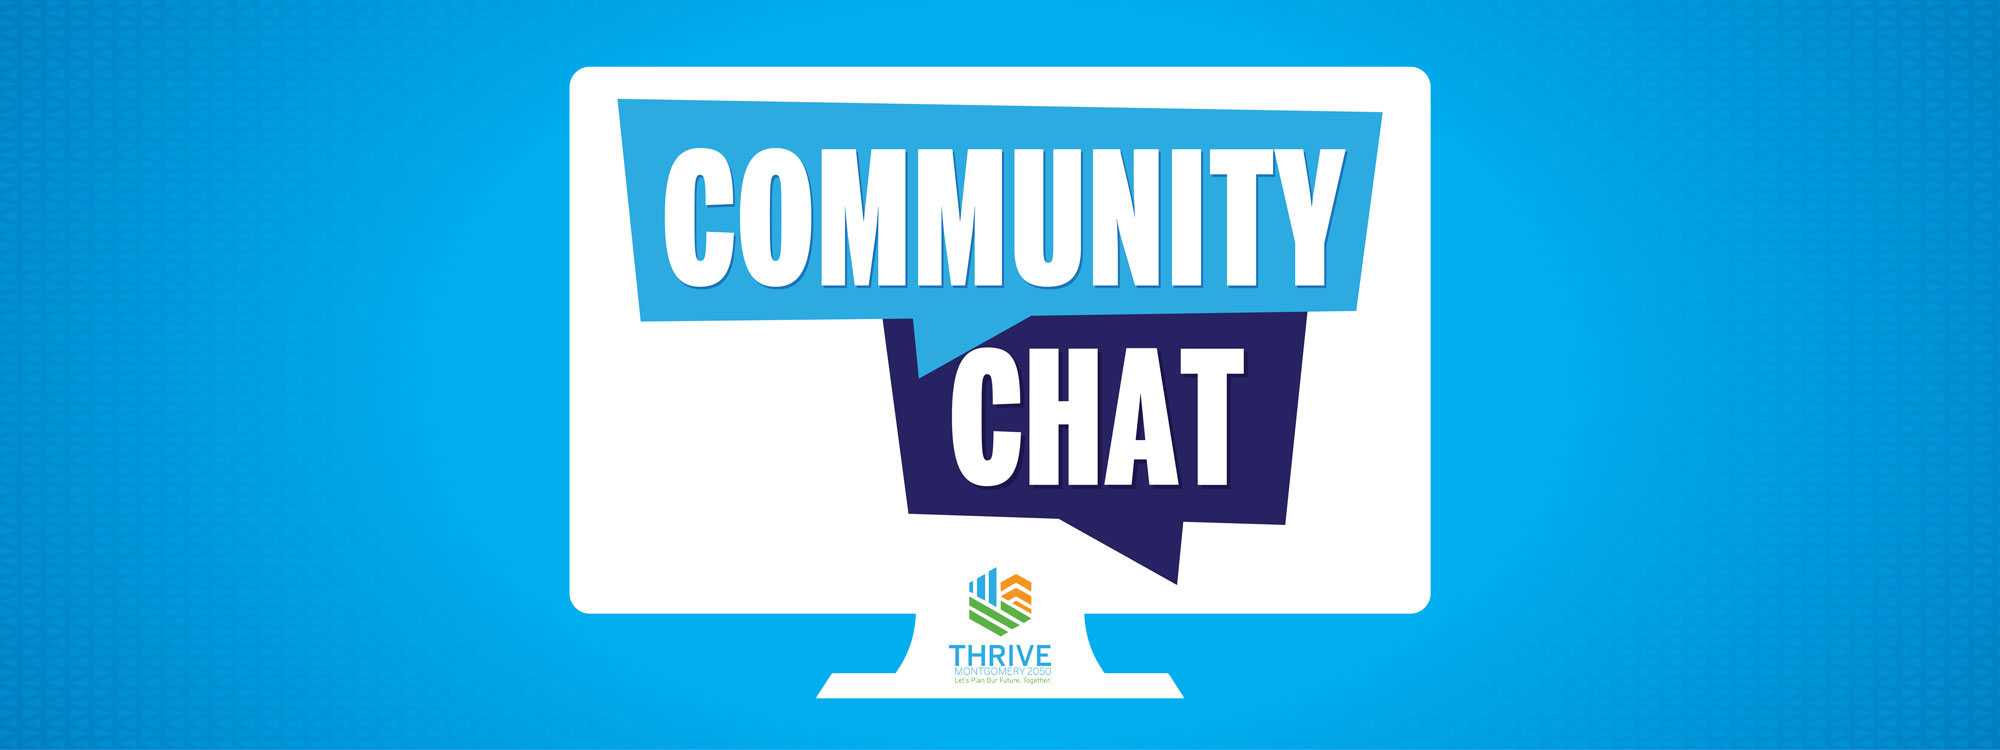 Community Chat, Thrive Montgomery 2050